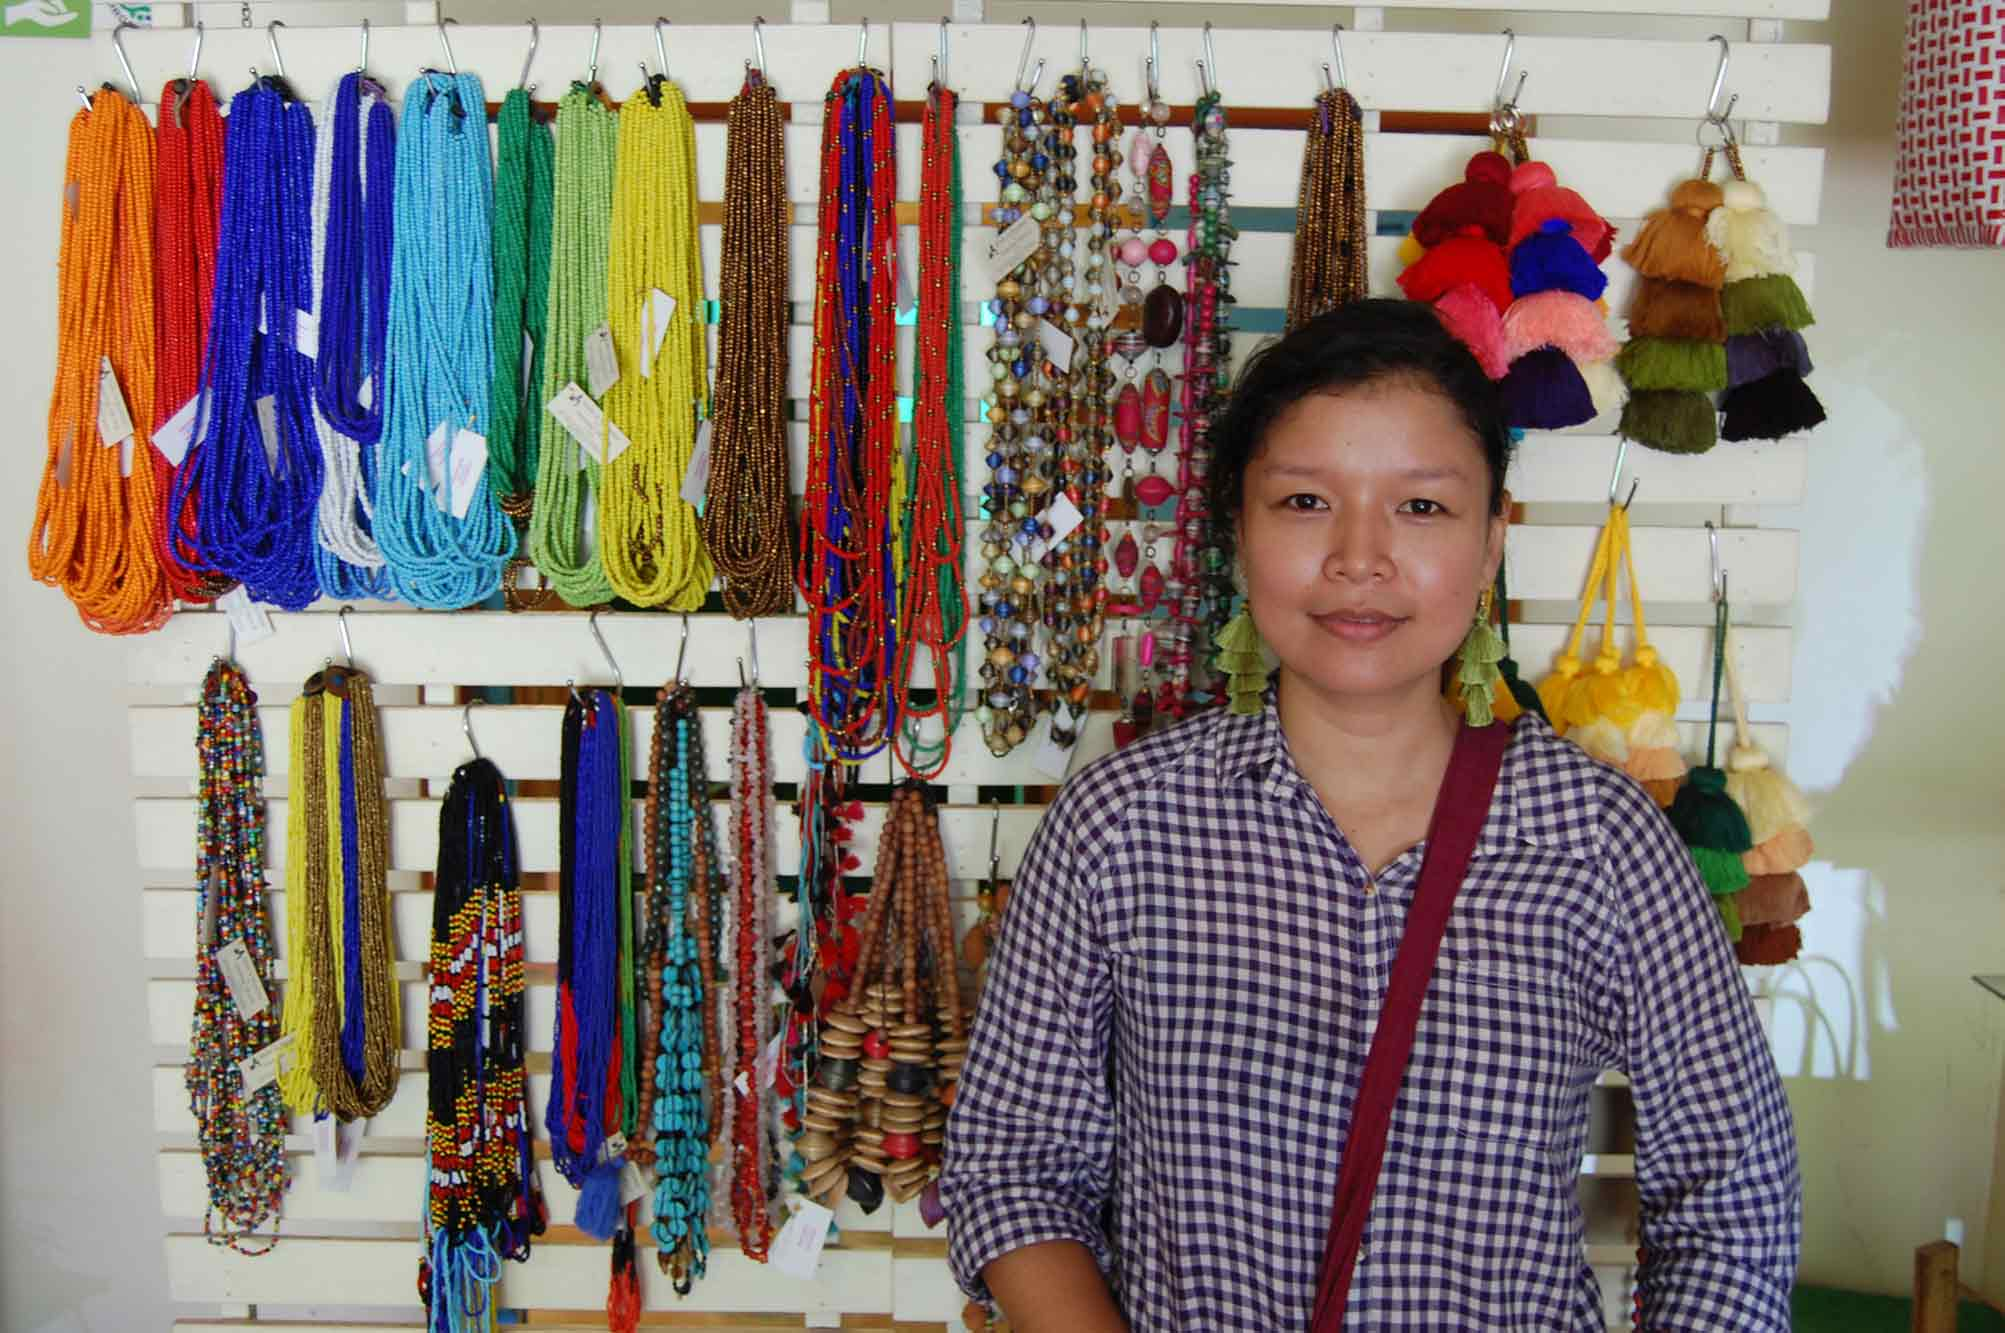 Promoting inclusion of Myanmar small and medium enterprises in the tourism industry